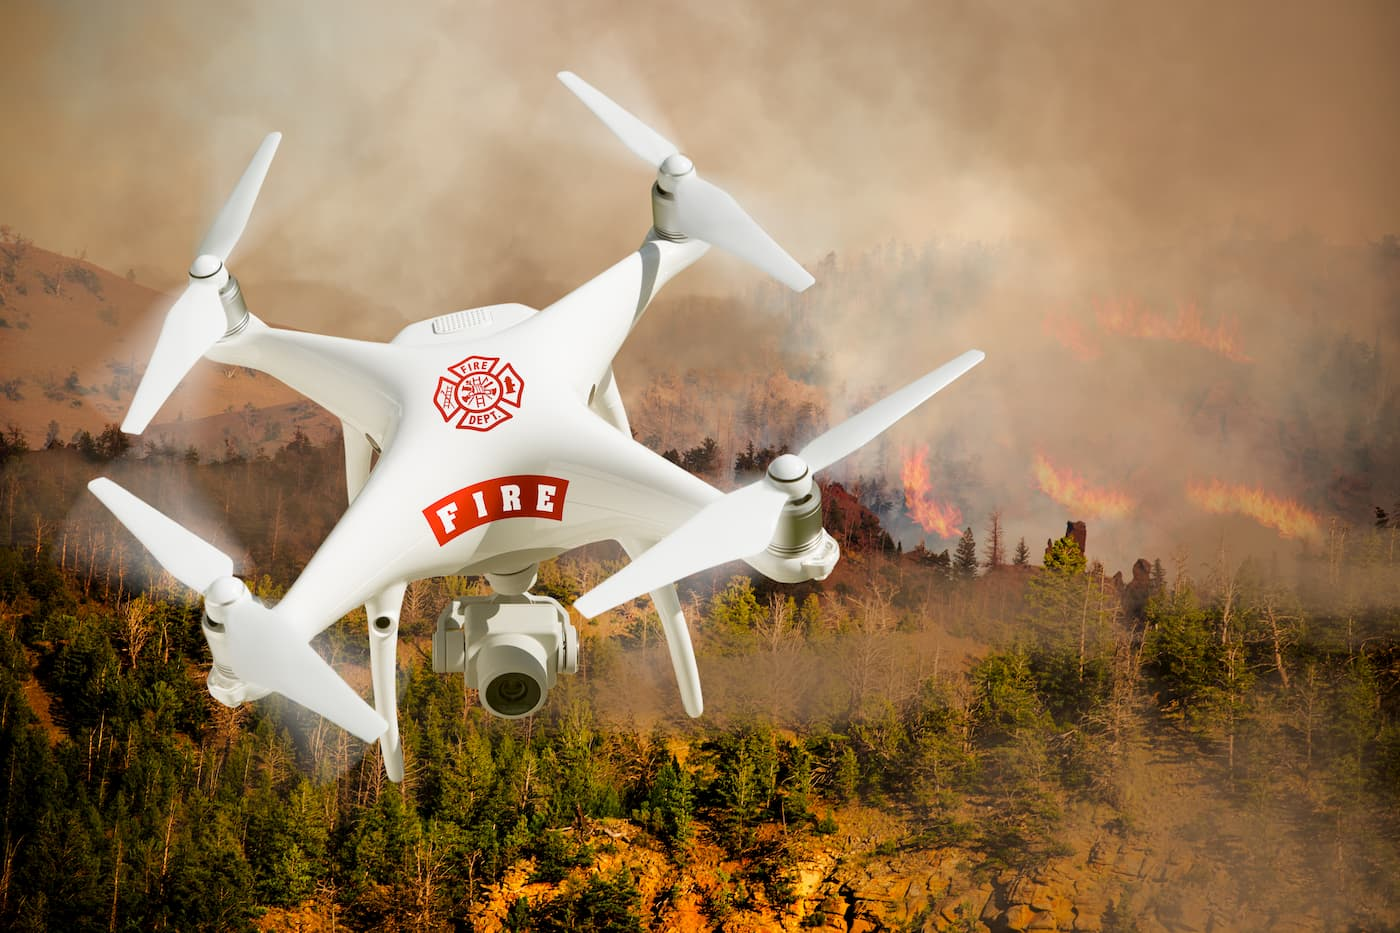 The Role of Technology in Response to Natural Disasters